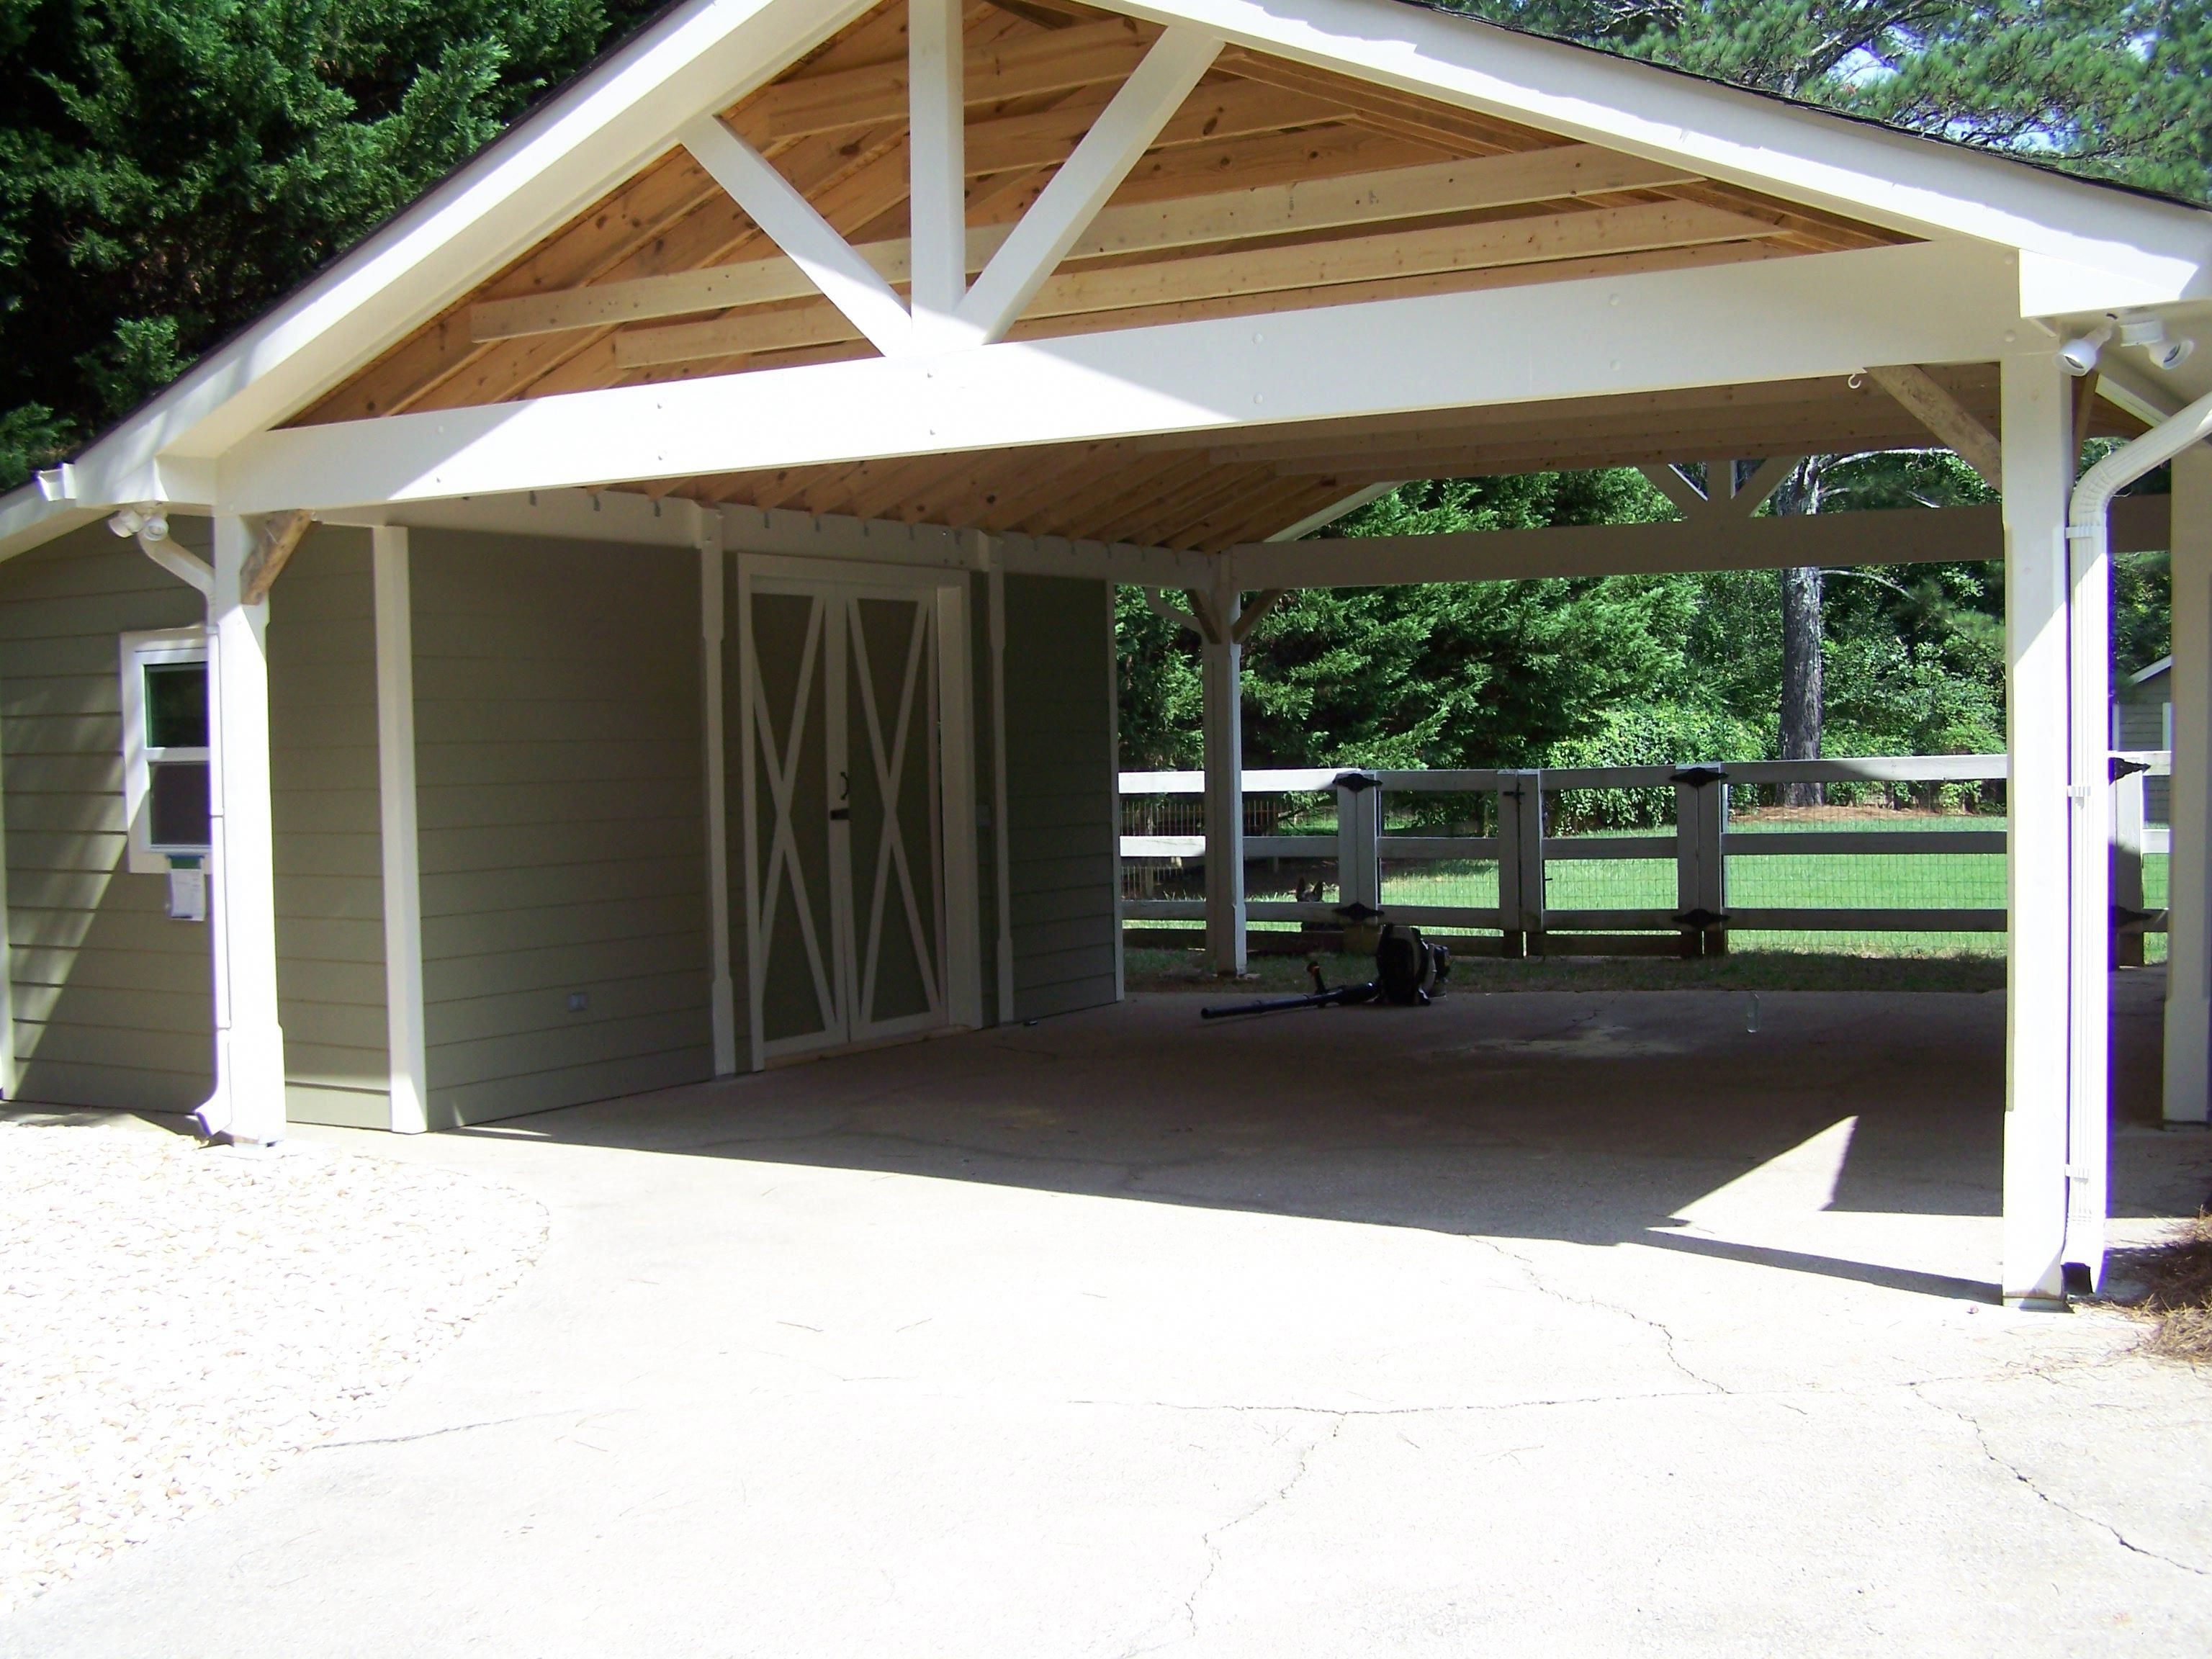 Carport with attached building rvyardideas Building a